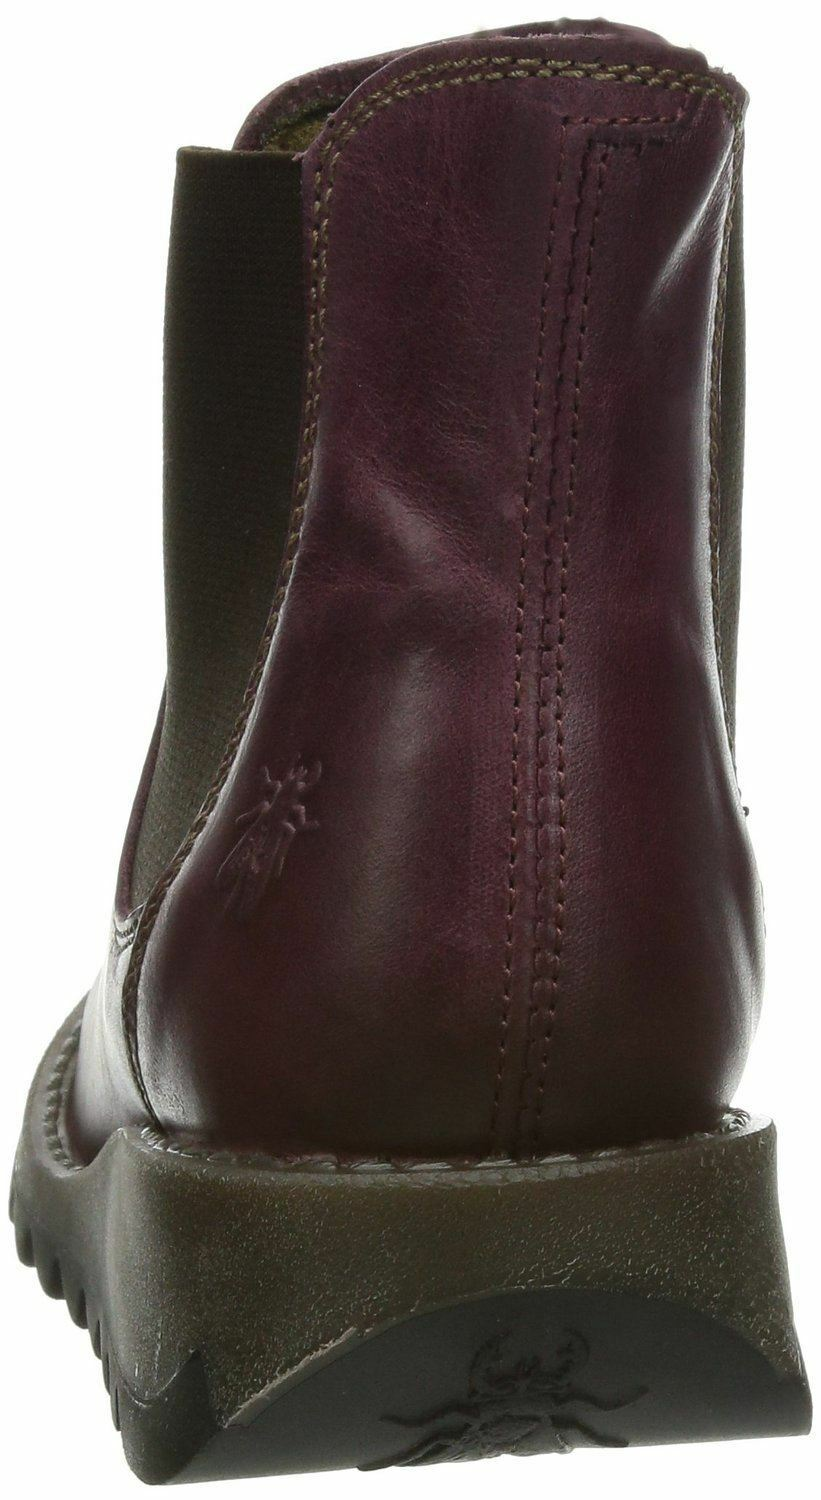 Fly london london london Salv purple Cuir women Ankle Bottes 0886cb